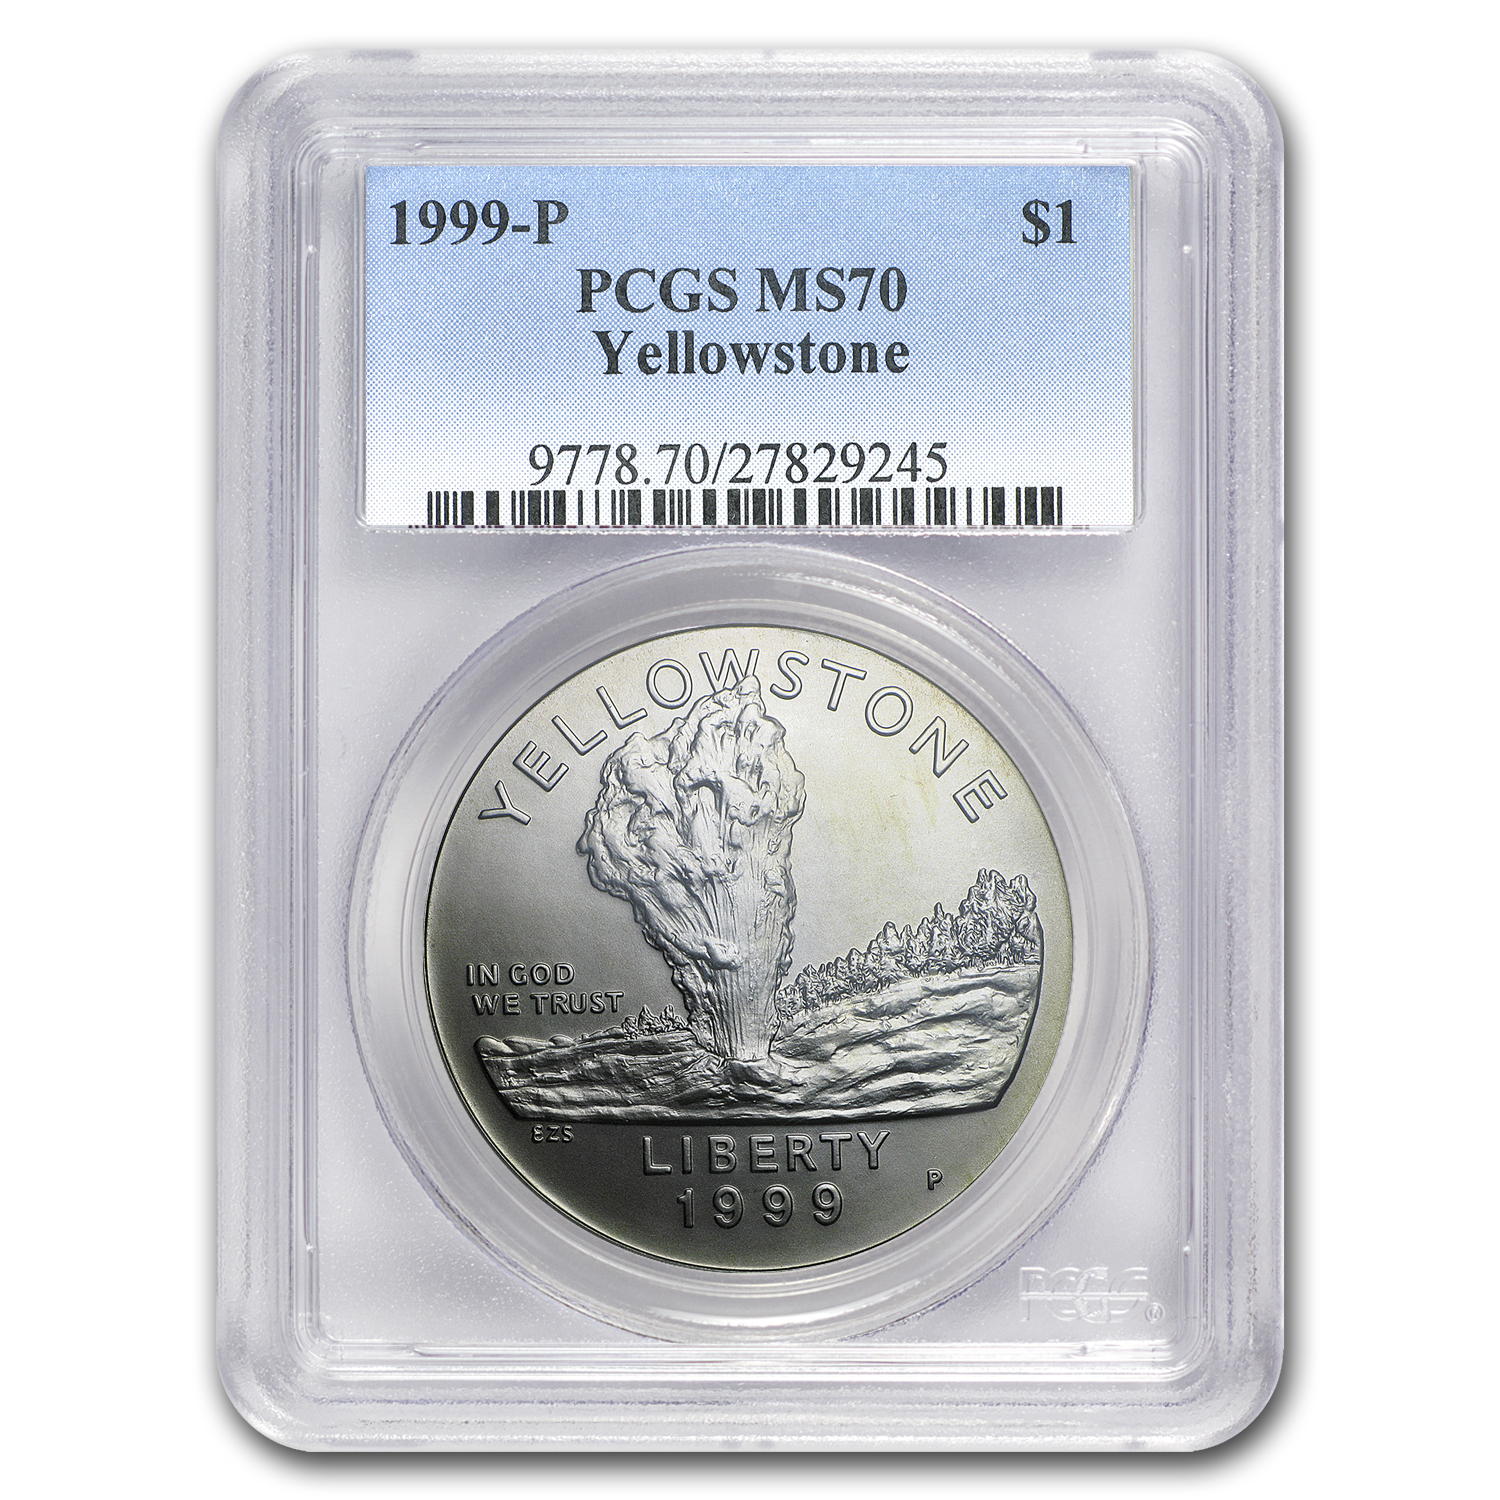 1999-P Yellowstone Park $1 Silver Commem MS-70 PCGS